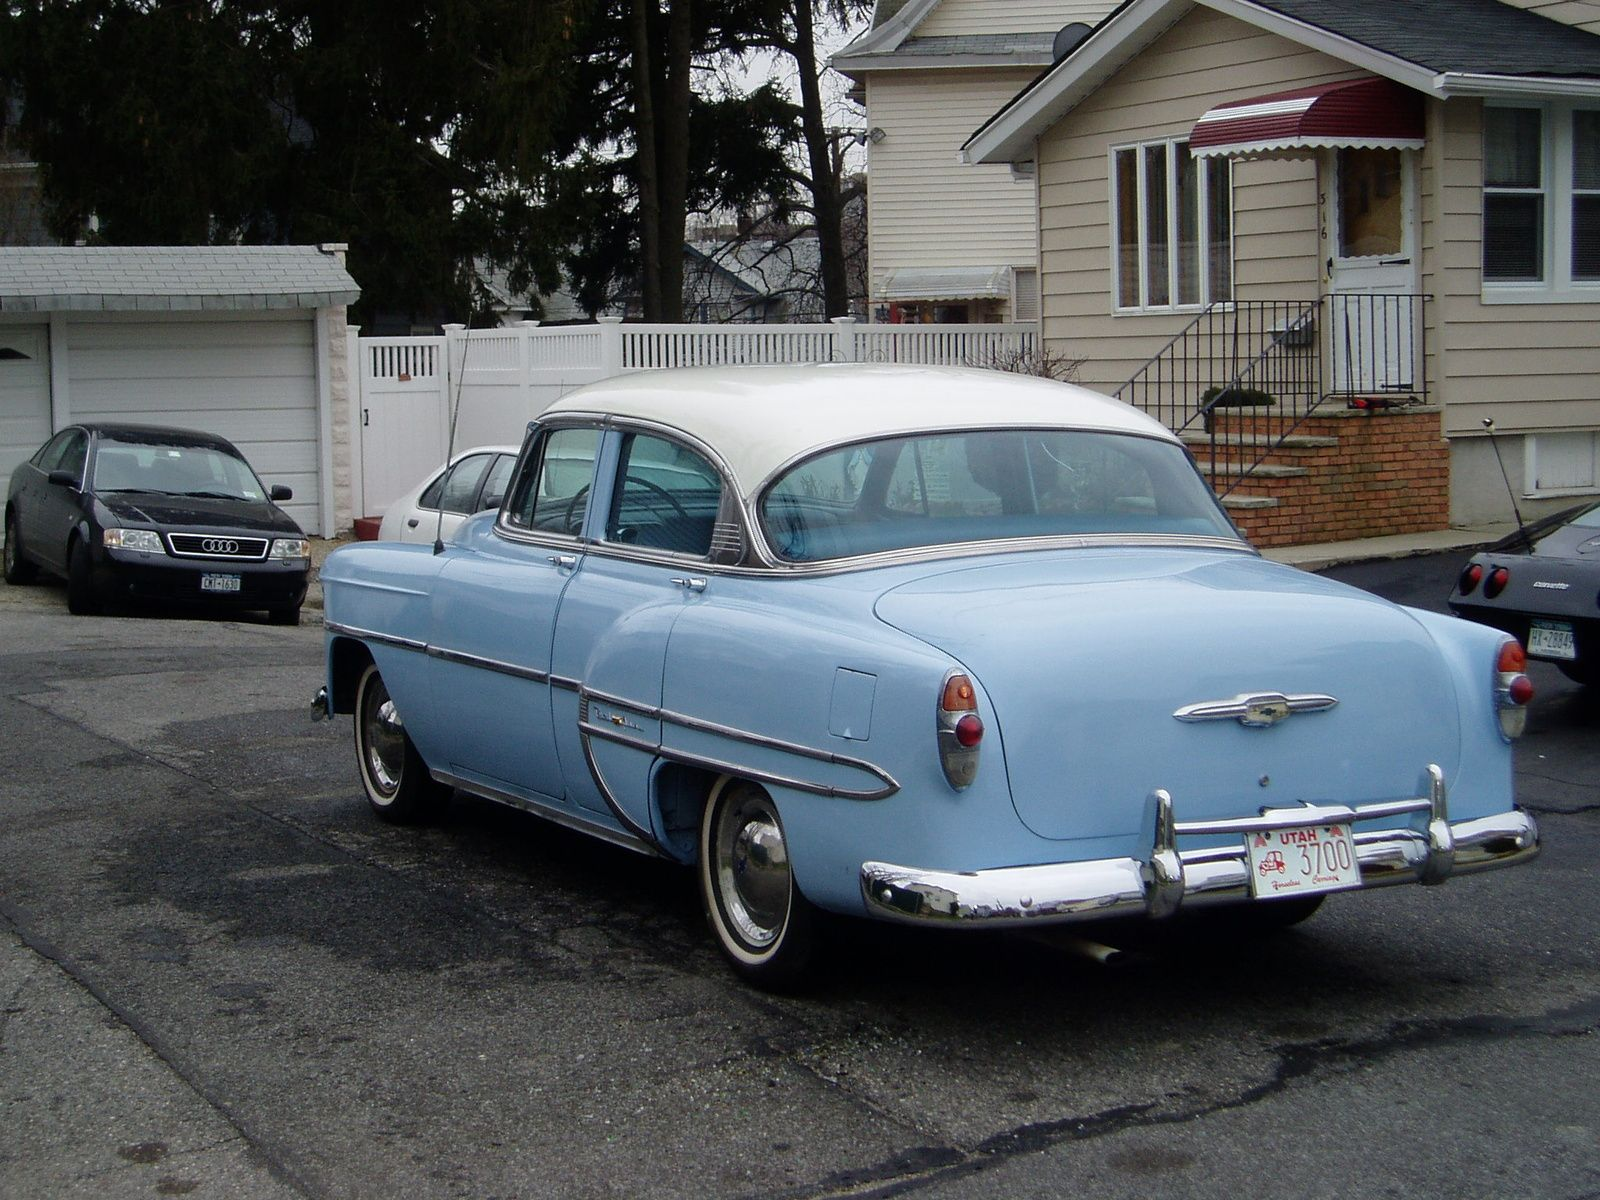 1953 Chevy Bel Air Similar To One My Step Father James Binyon Got For Me Chevy Bel Air Chevrolet Bel Air Bel Air